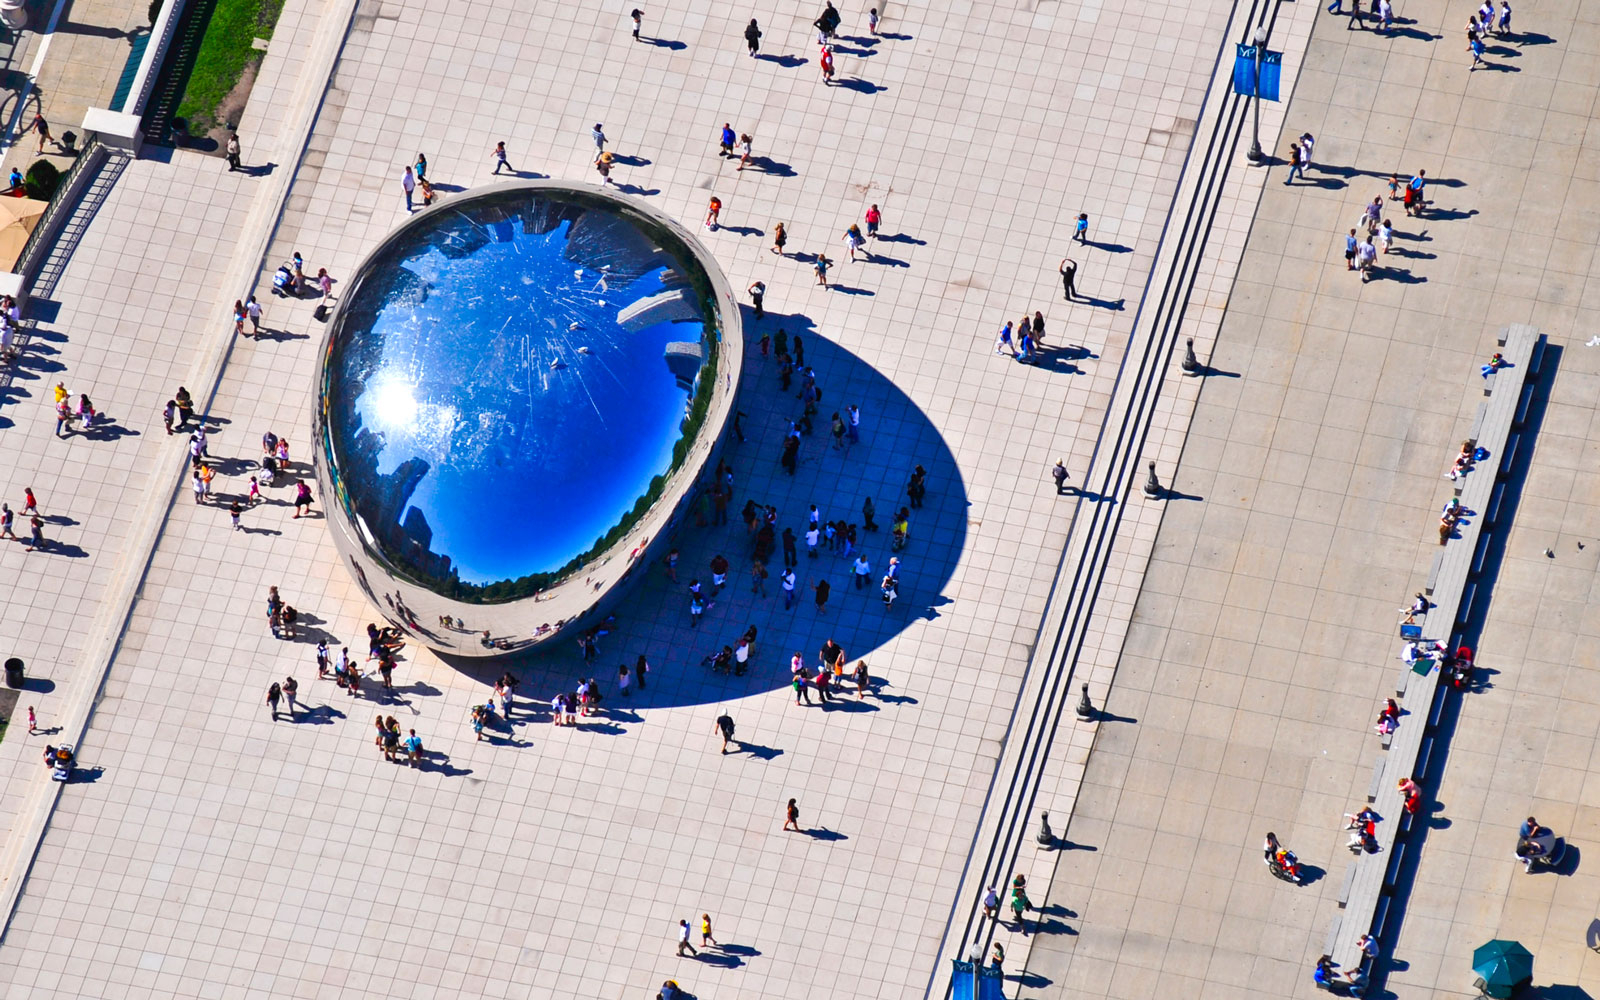 Cloud Gate (TheBean) landmark in Chicago, IL